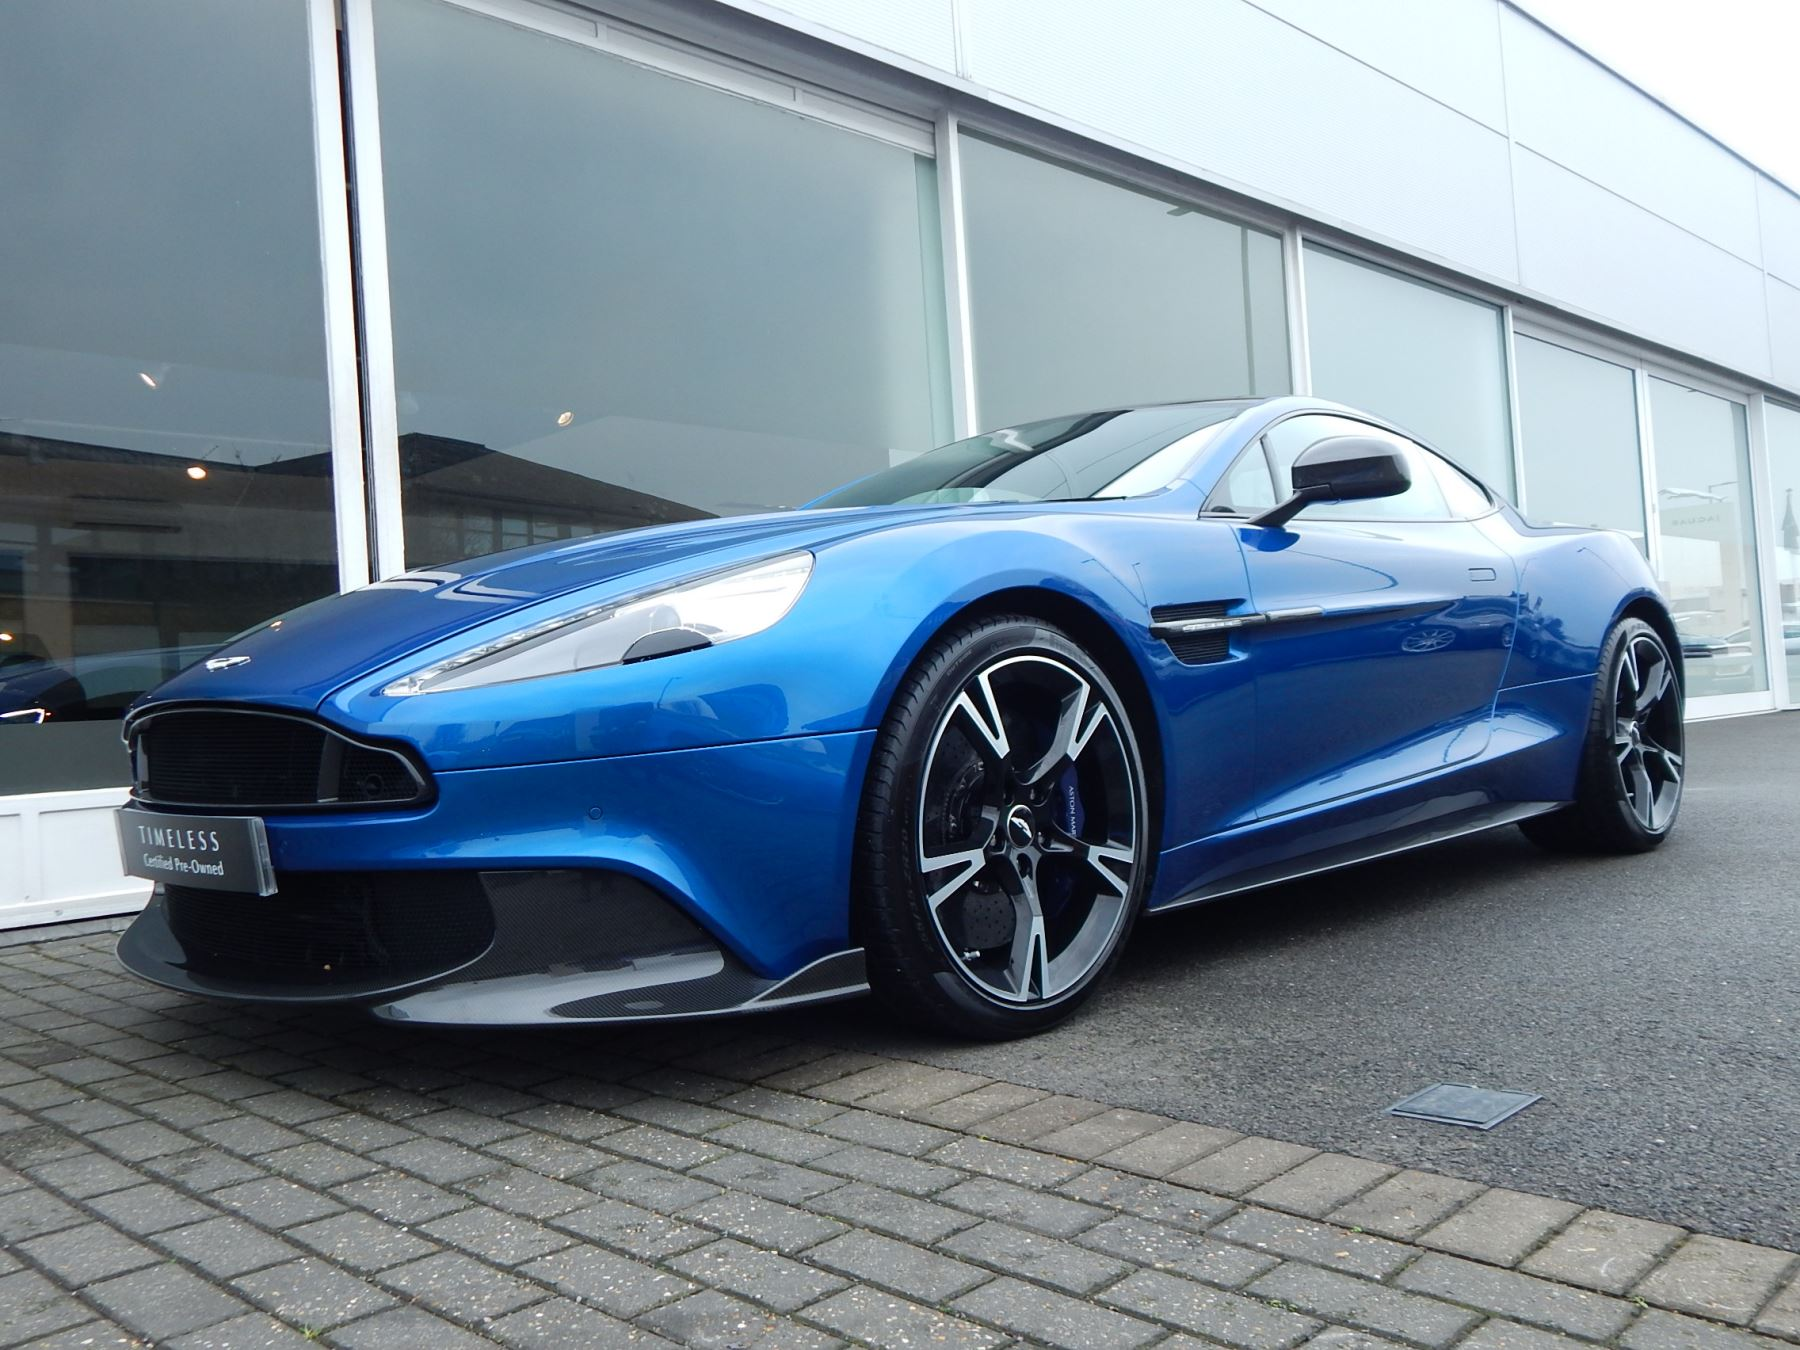 Aston Martin Vanquish V12 [595] S 2+2 2dr Touchtronic image 8